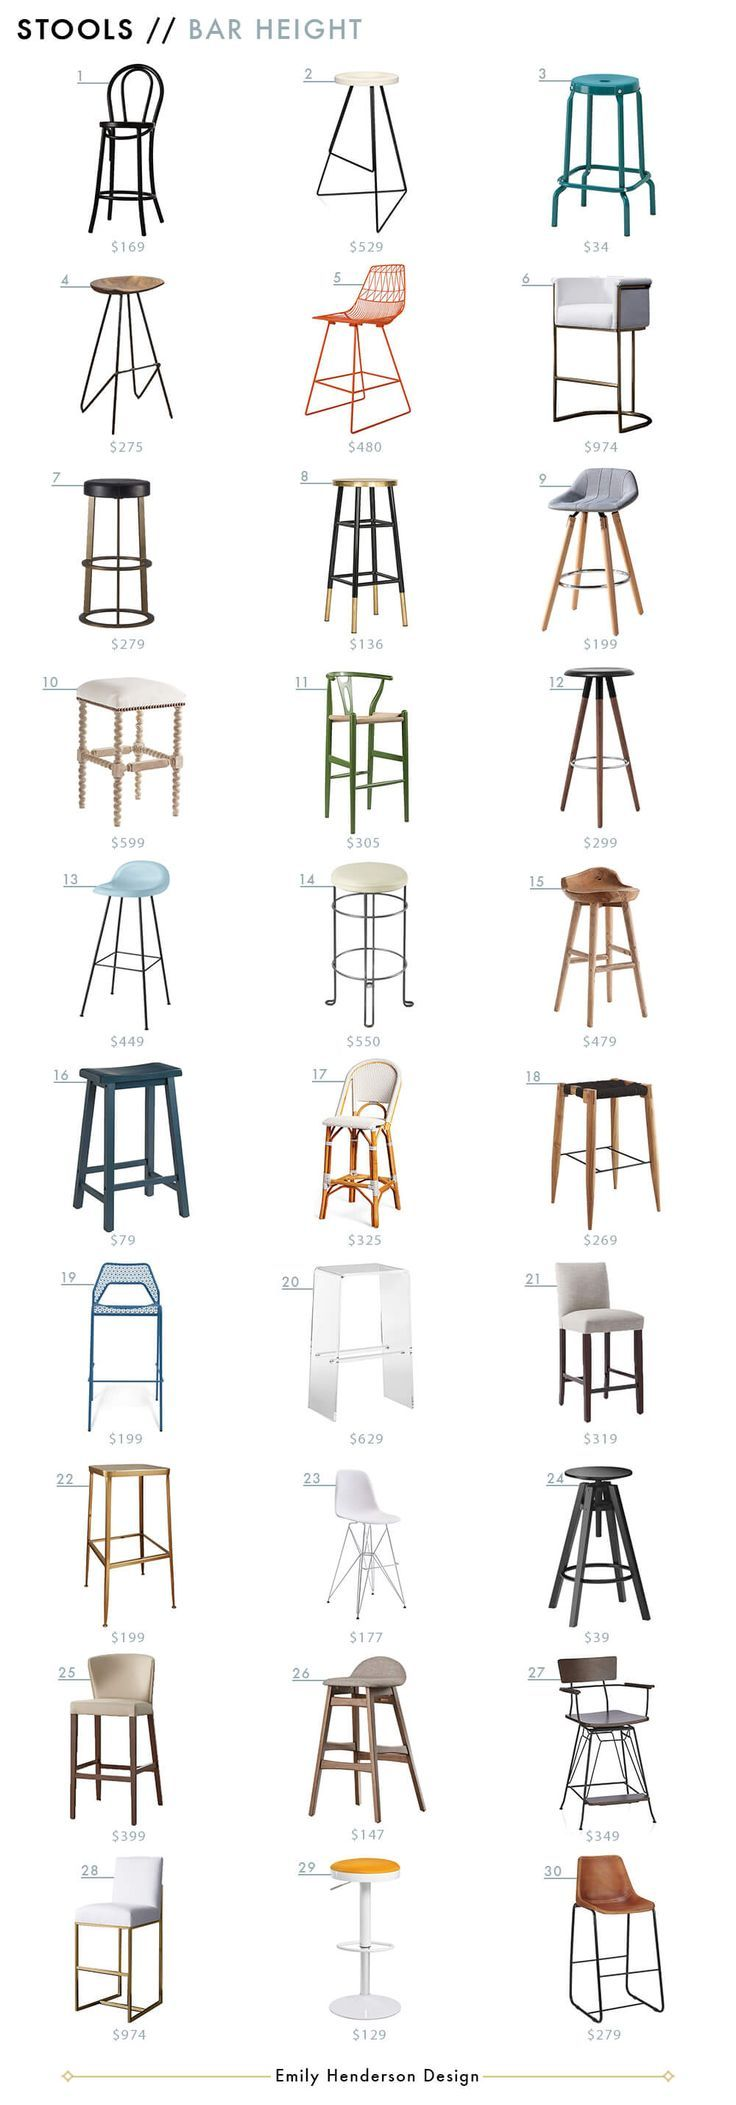 Best 25+ Rustic Counter Stools Ideas On Pinterest | Wood Counter Stools,  Rustic Bar Stools And Kitchen Island With Stools